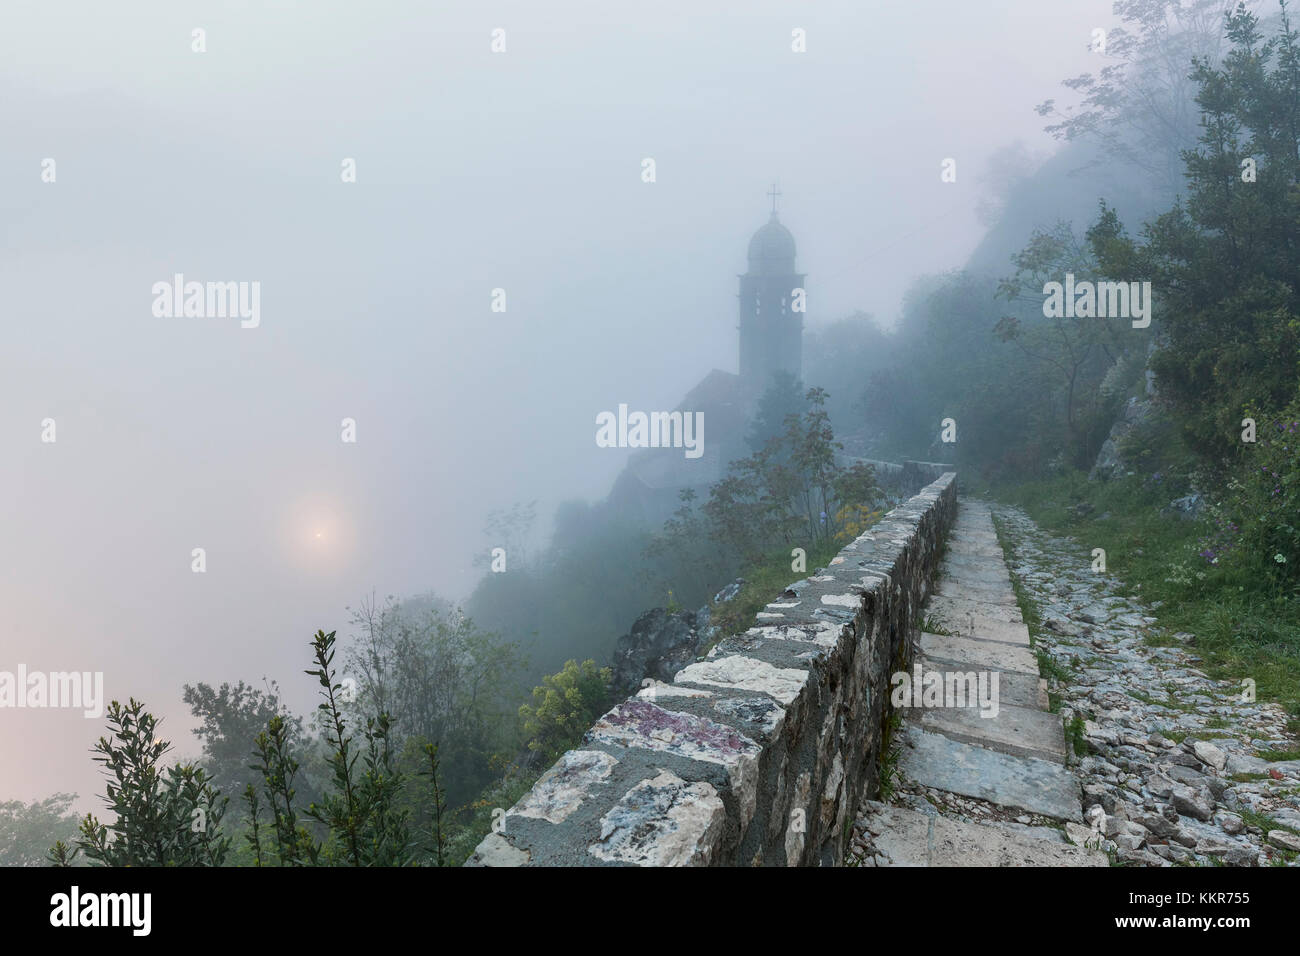 Fortifications of Kotor, part of the Natural and Culturo-Historical Region of Kotor, Montenegro, in a foggy morning - Stock Image